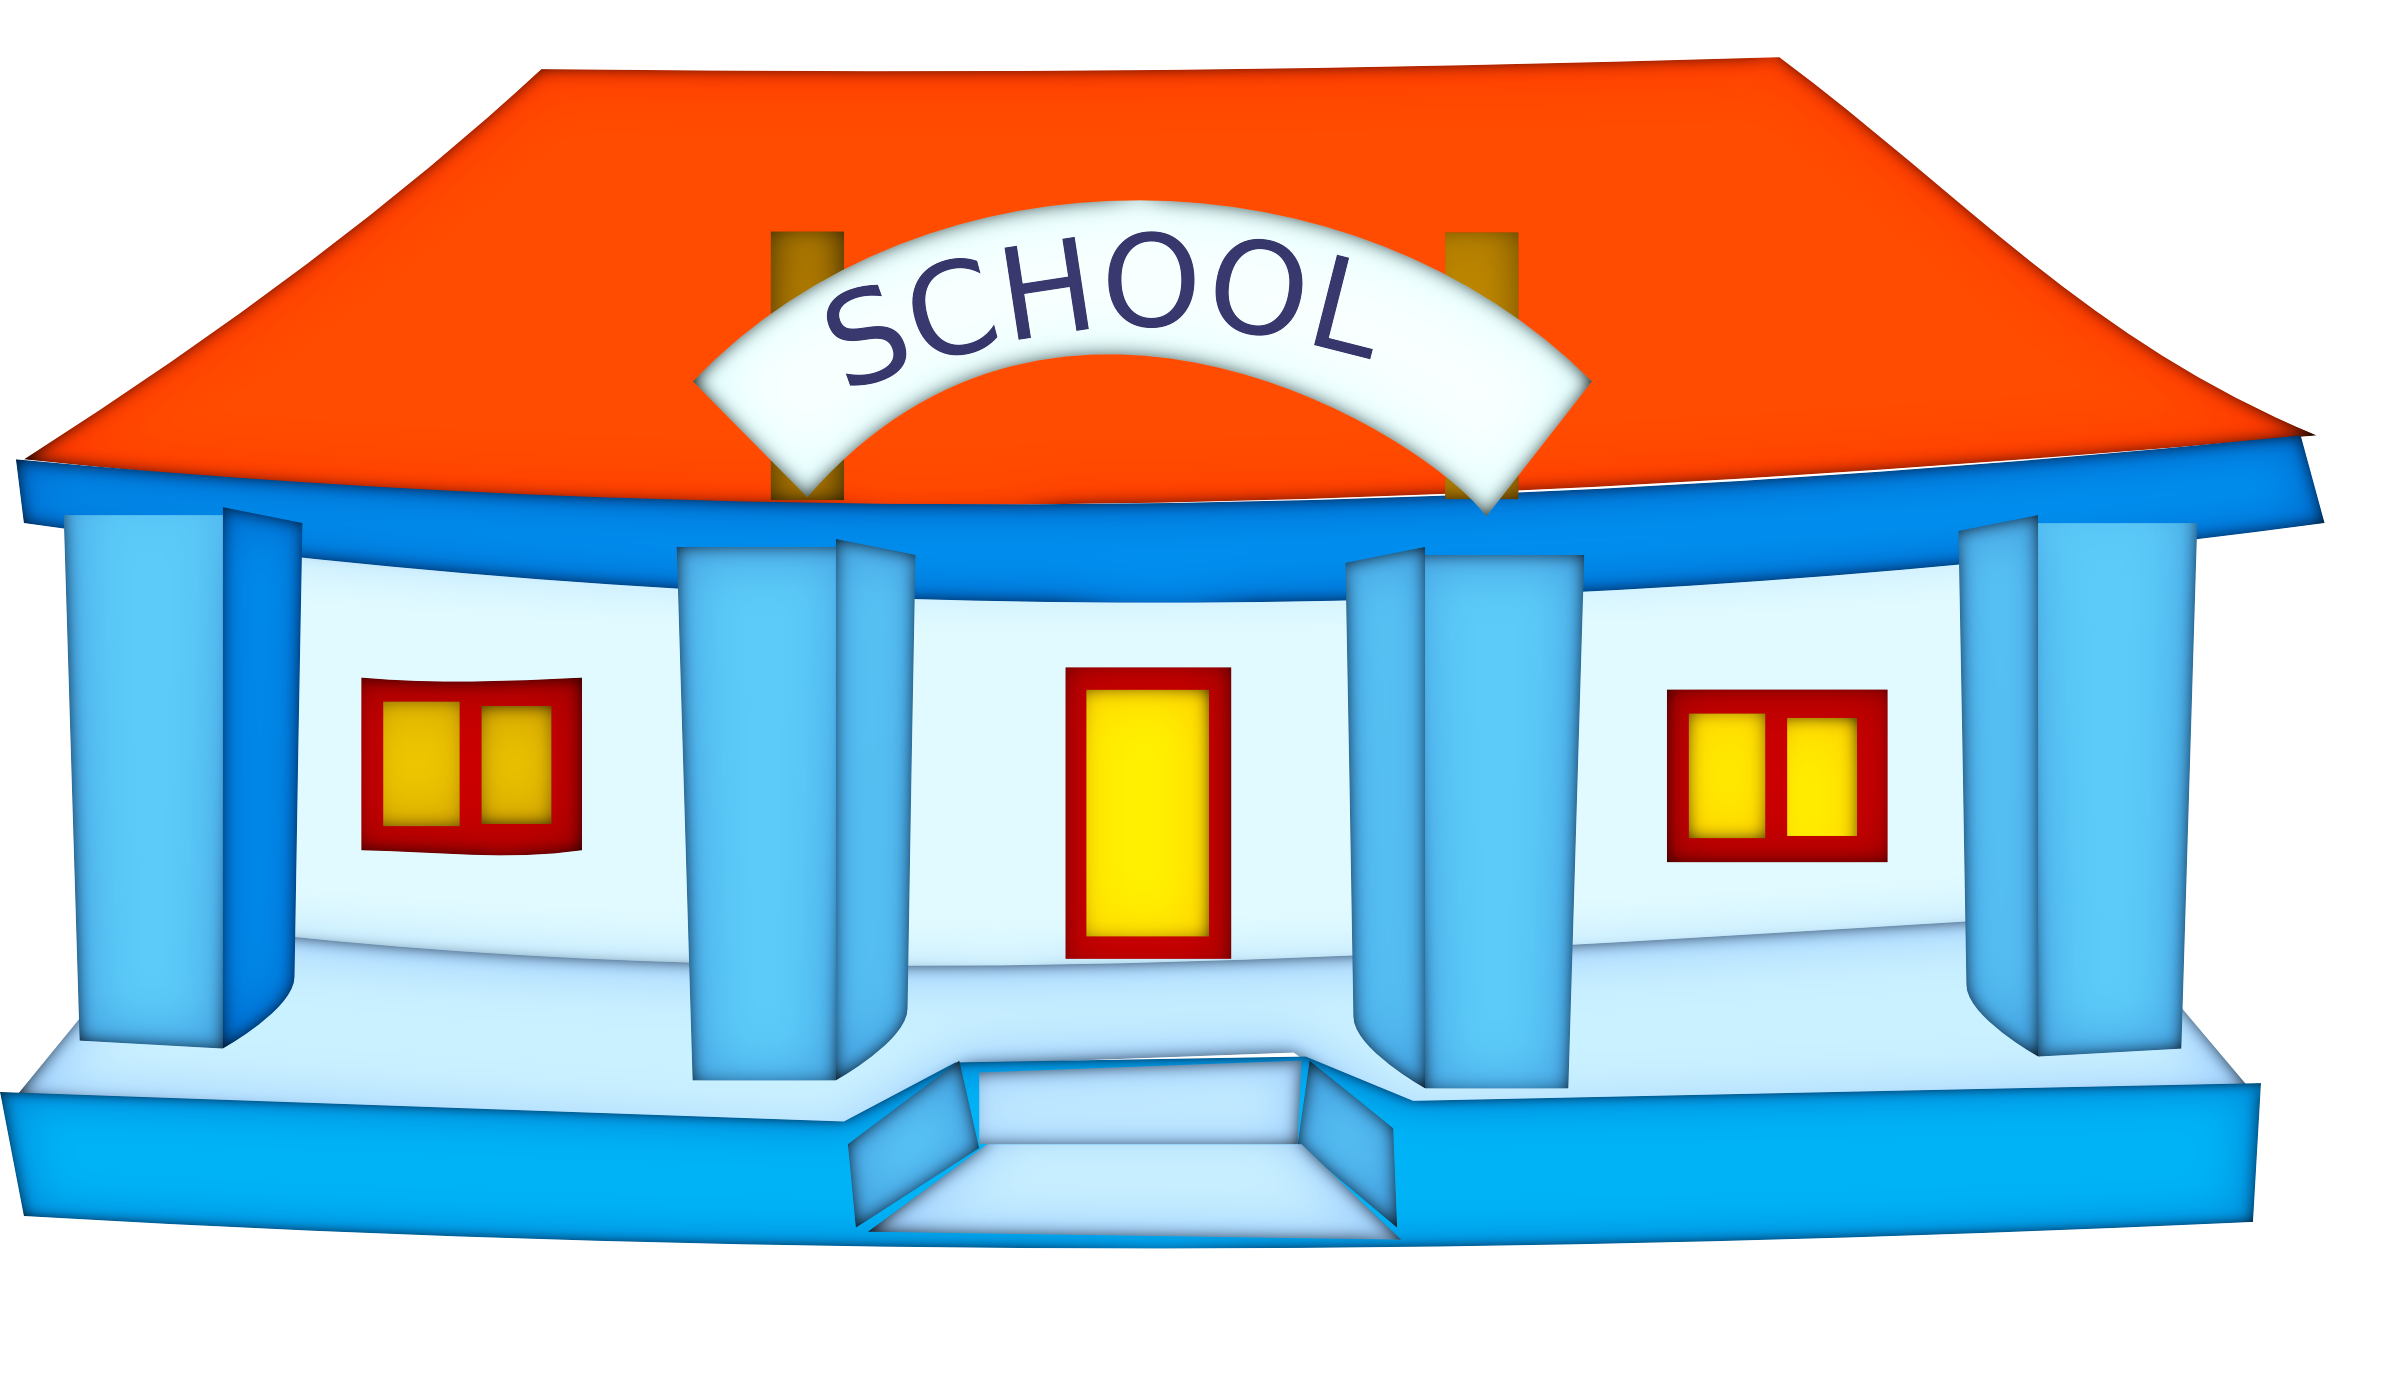 Entrance to school clipart.